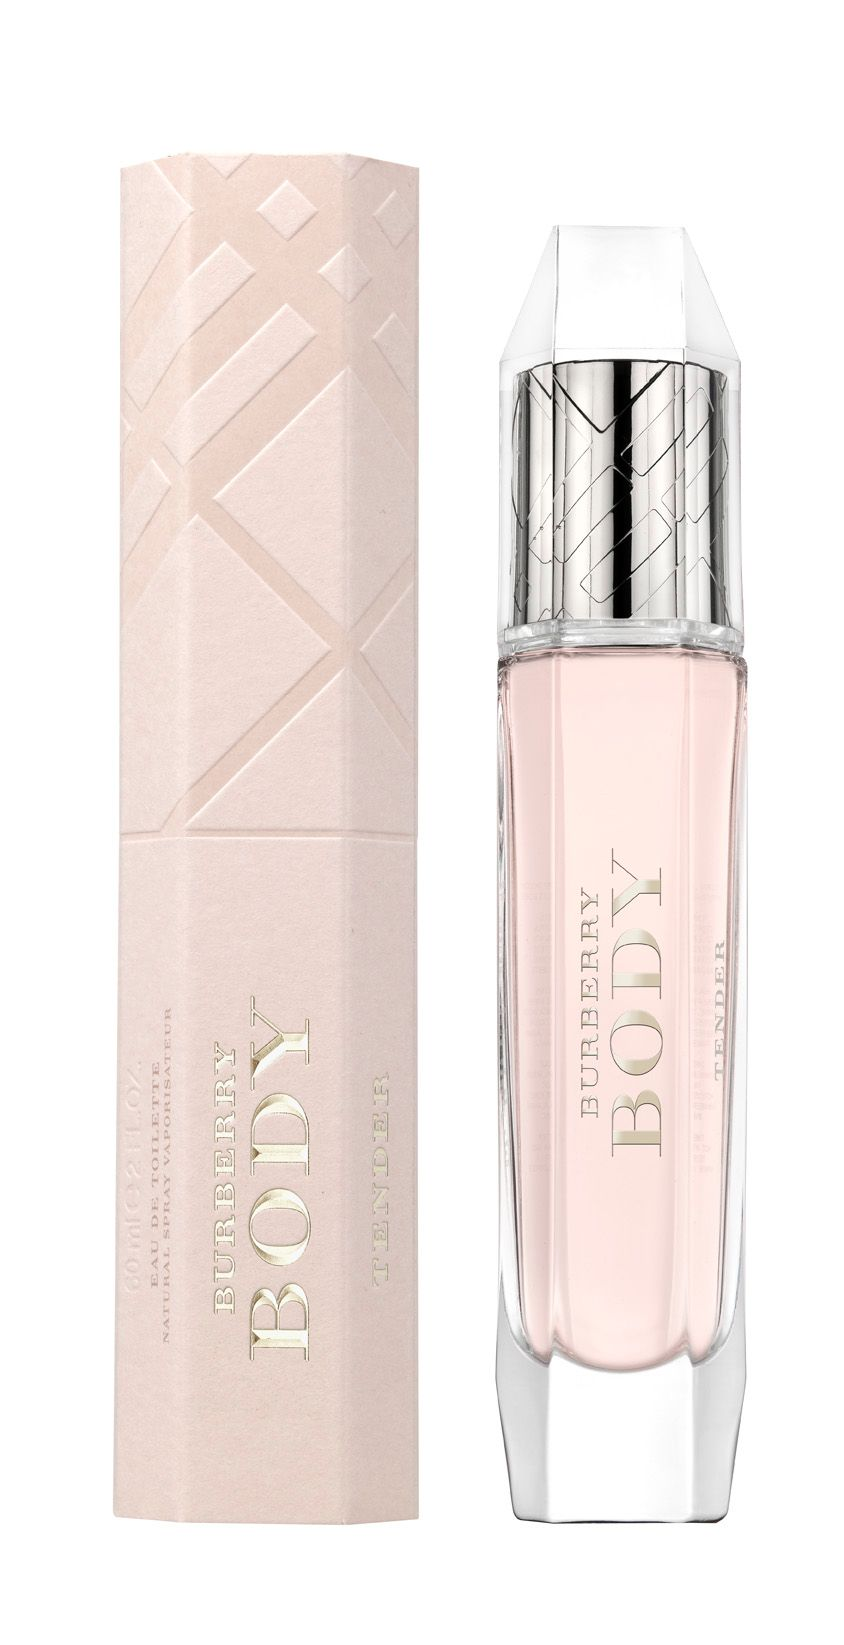 Body Tender Eau de Toilette